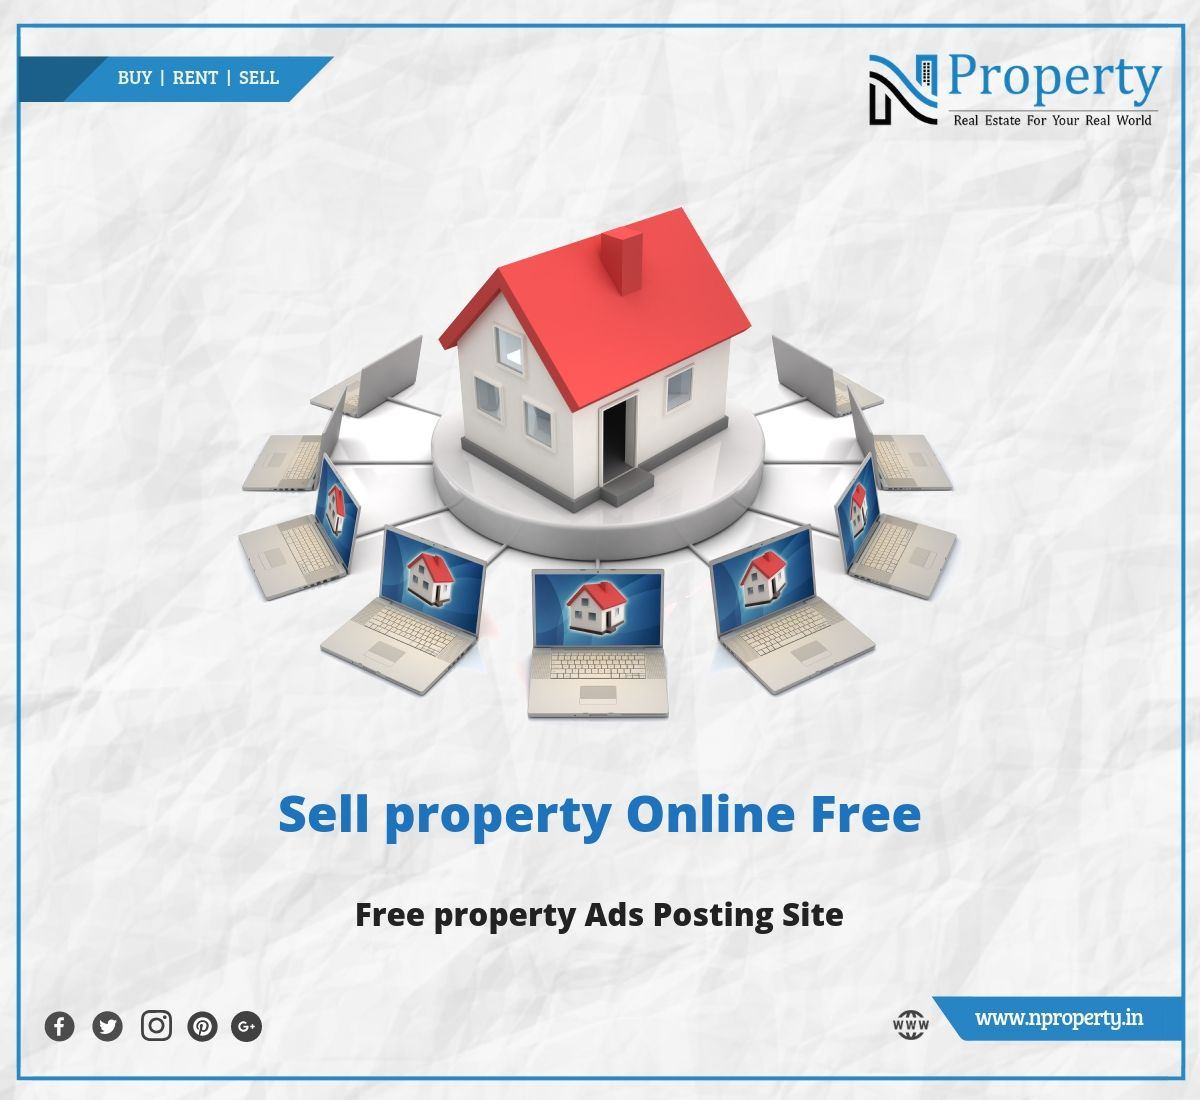 Free Property Ads Online By Nproperty visit now www